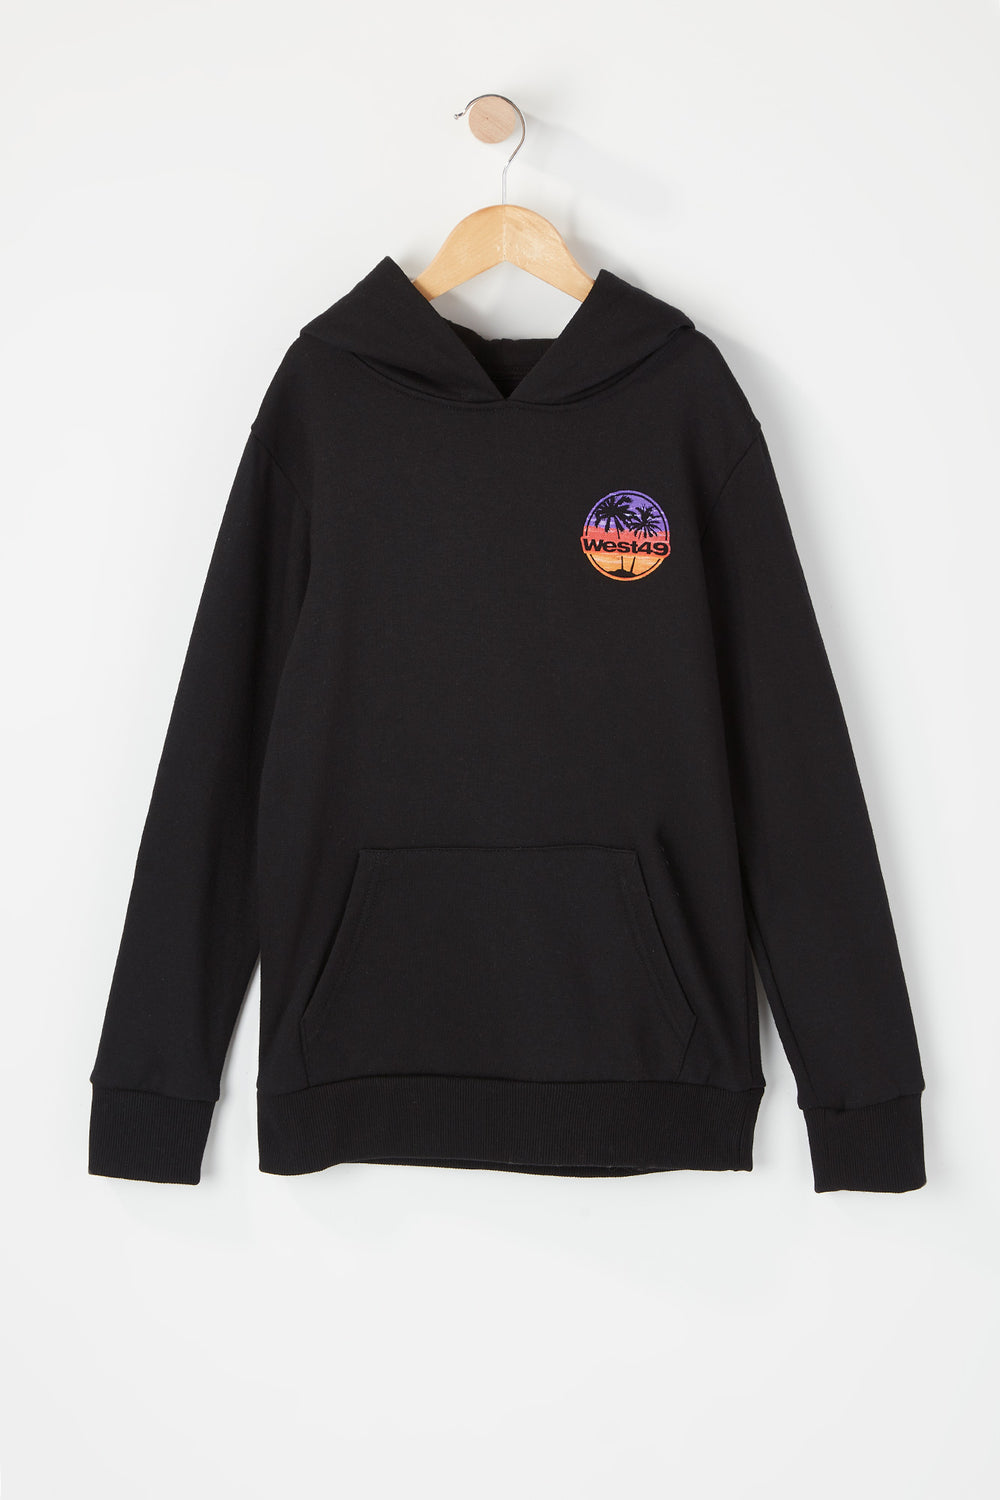 West49 Youth Sunset Logo Hoodie Black